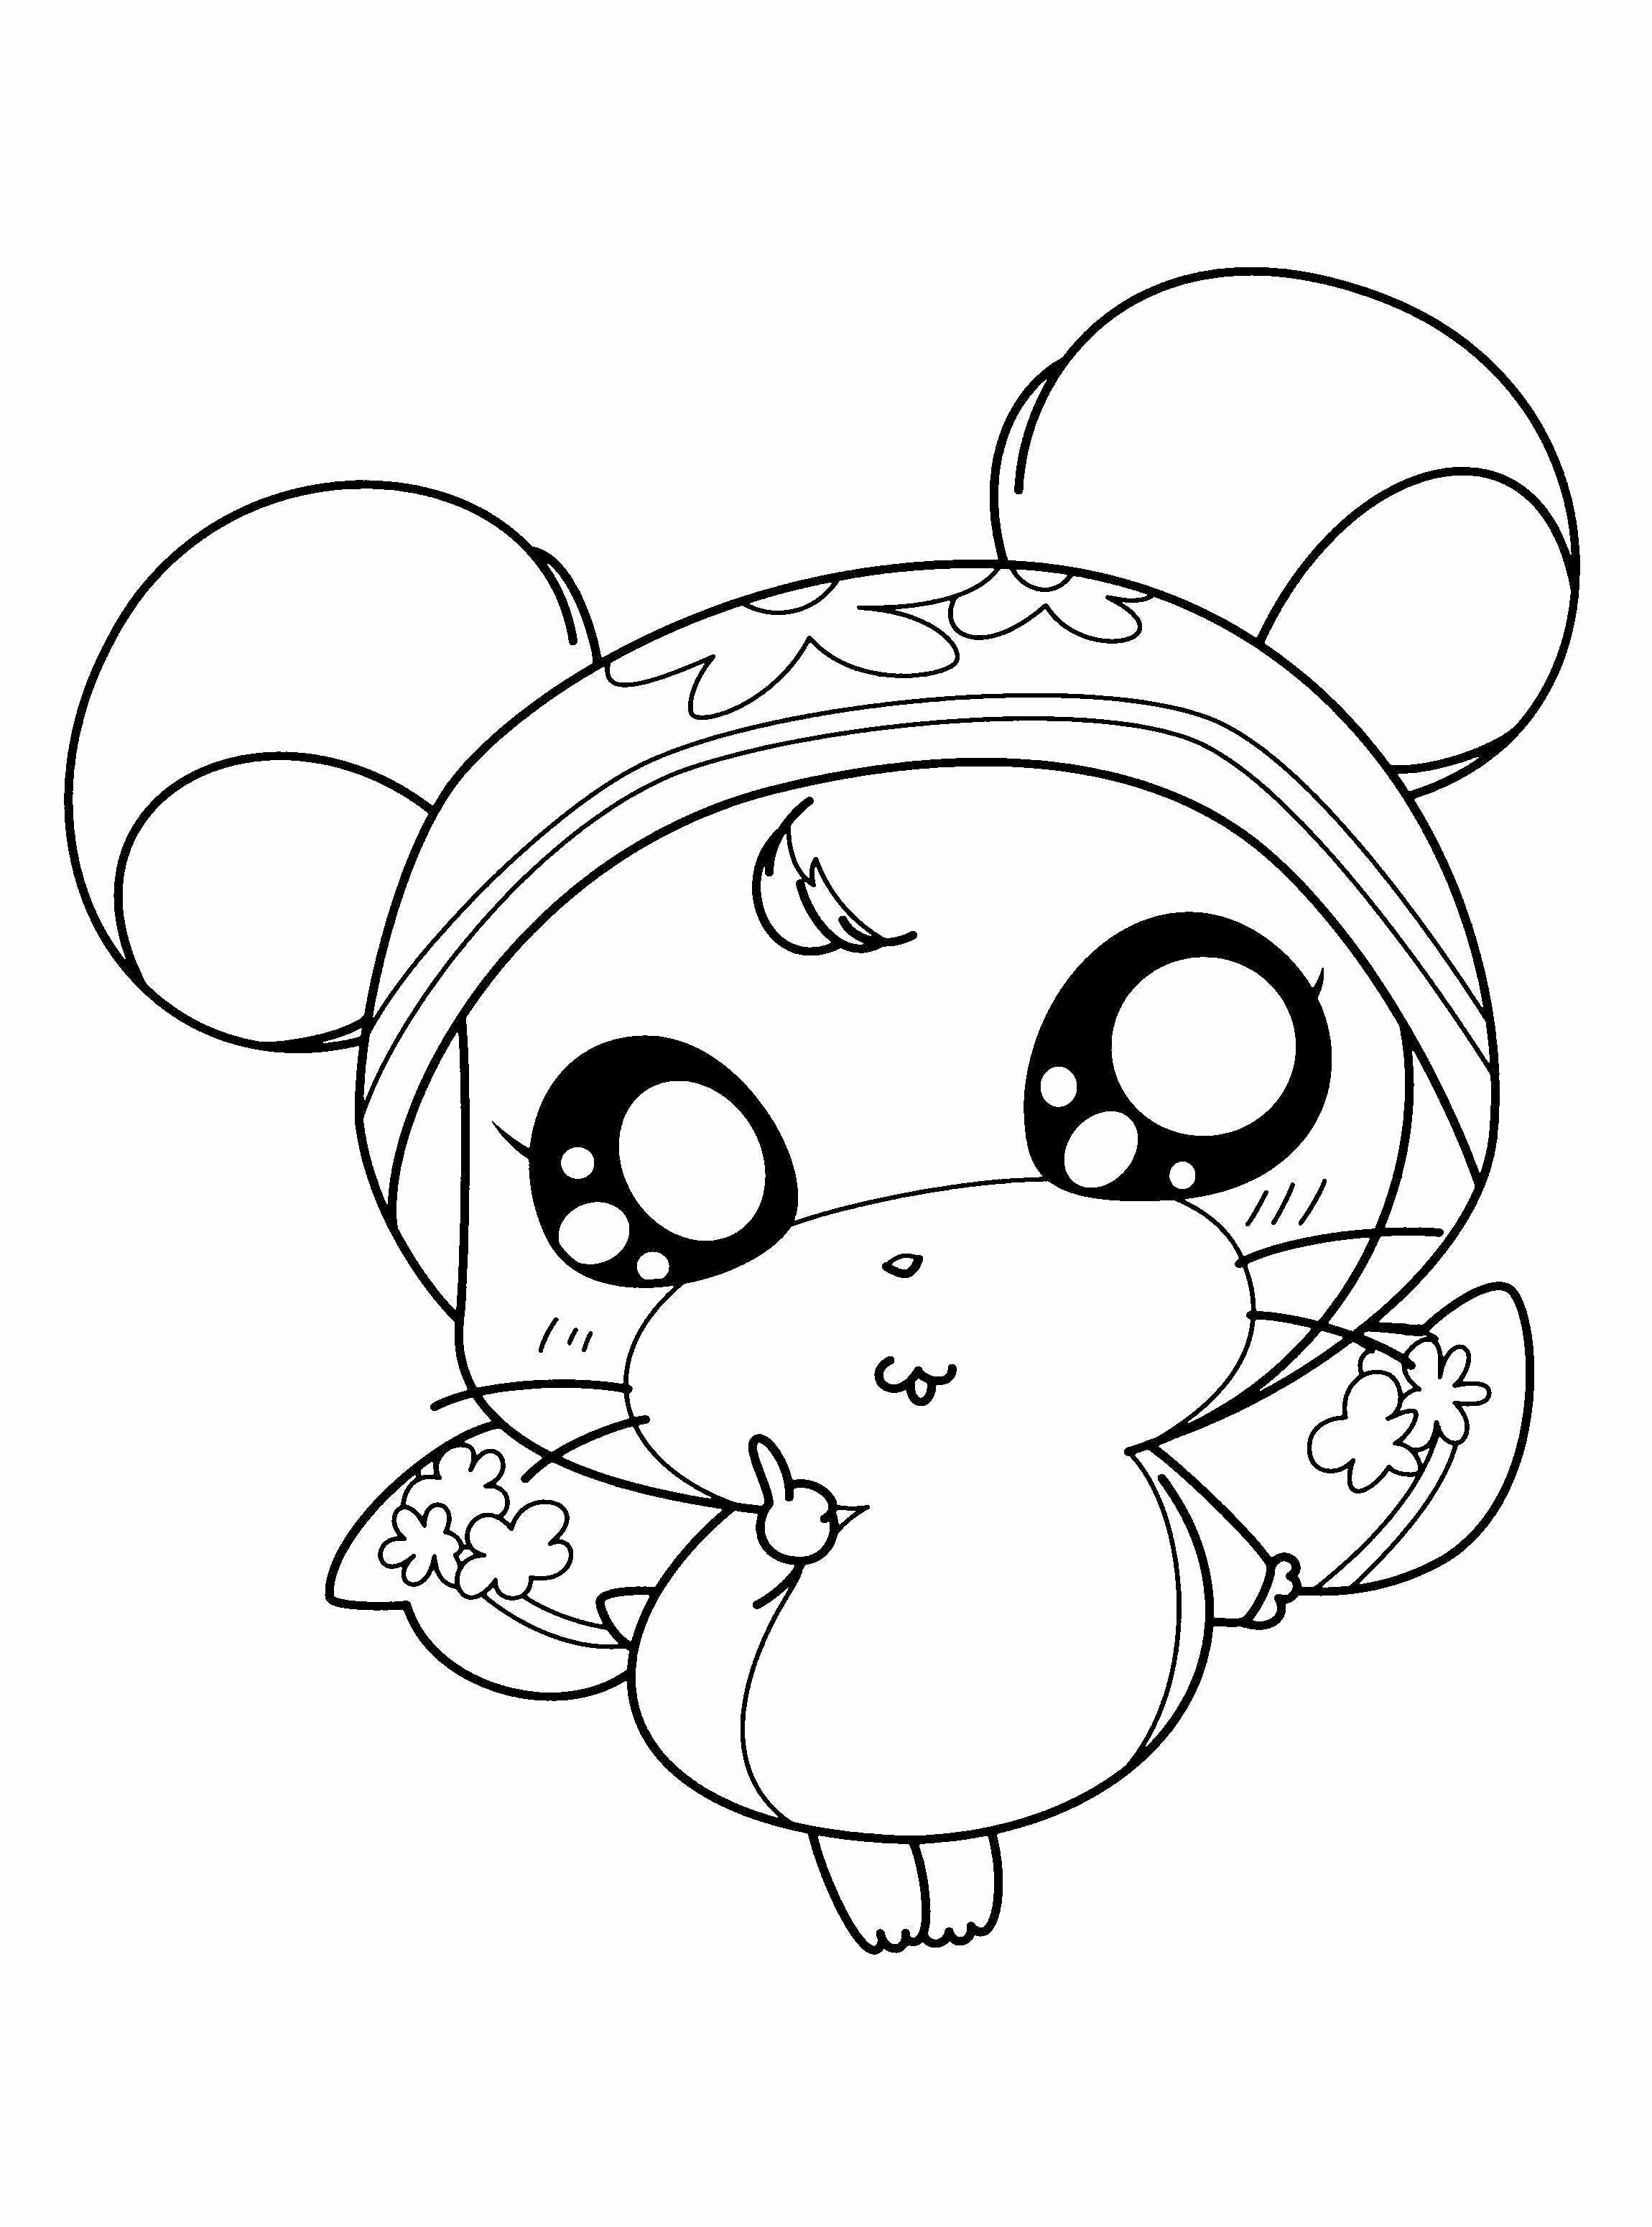 Printable Baby Coloring Pages Lovely Awesome Cute Ninja Coloring Pages In 2020 Unicorn Coloring Pages Pokemon Coloring Pages Animal Coloring Pages